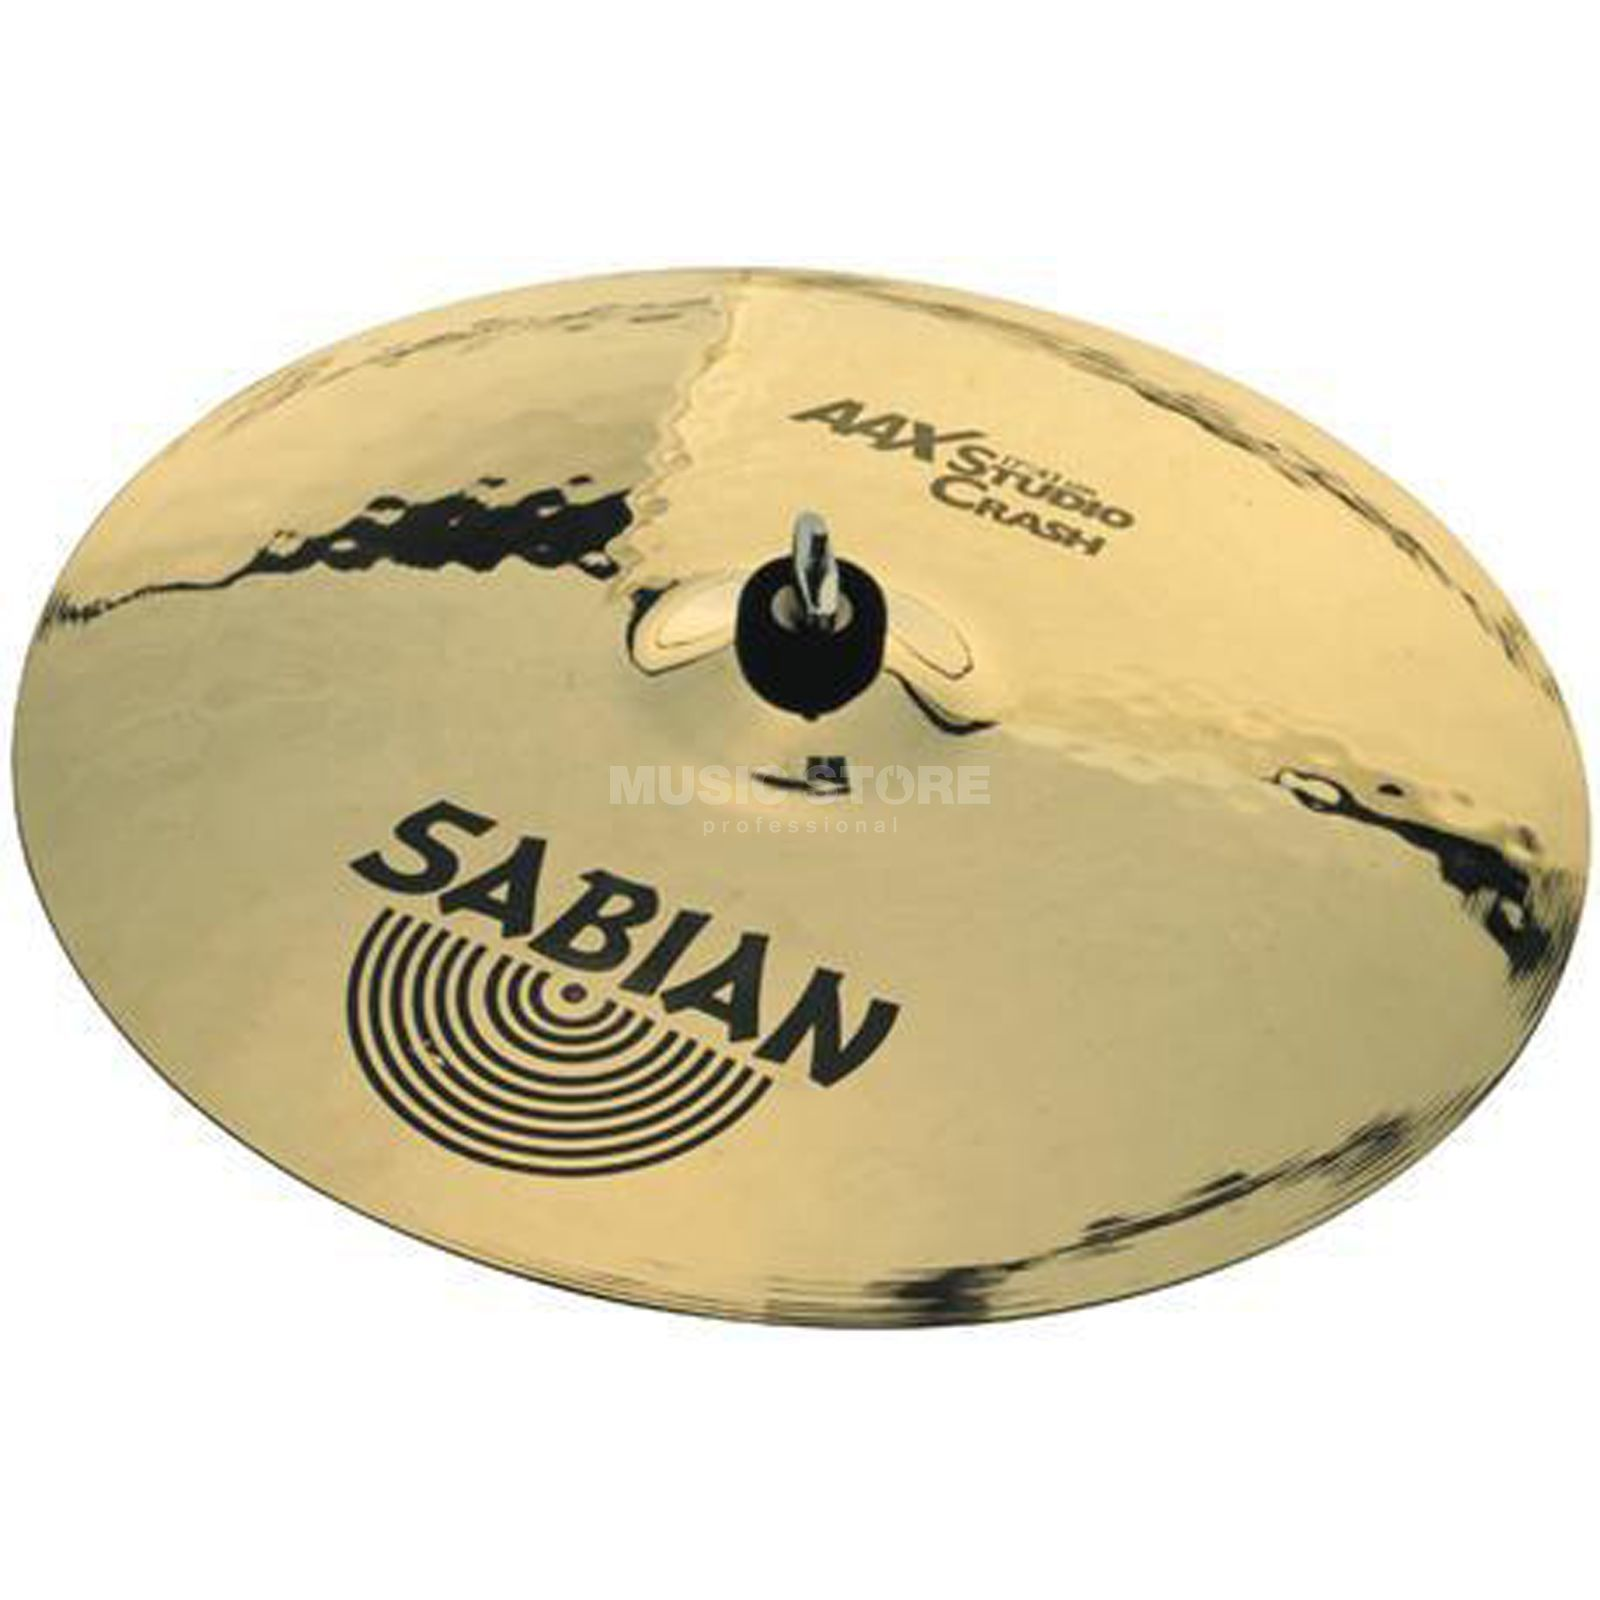 "Sabian AAX Studio Crash 18"", Brilliant Finish Produktbillede"